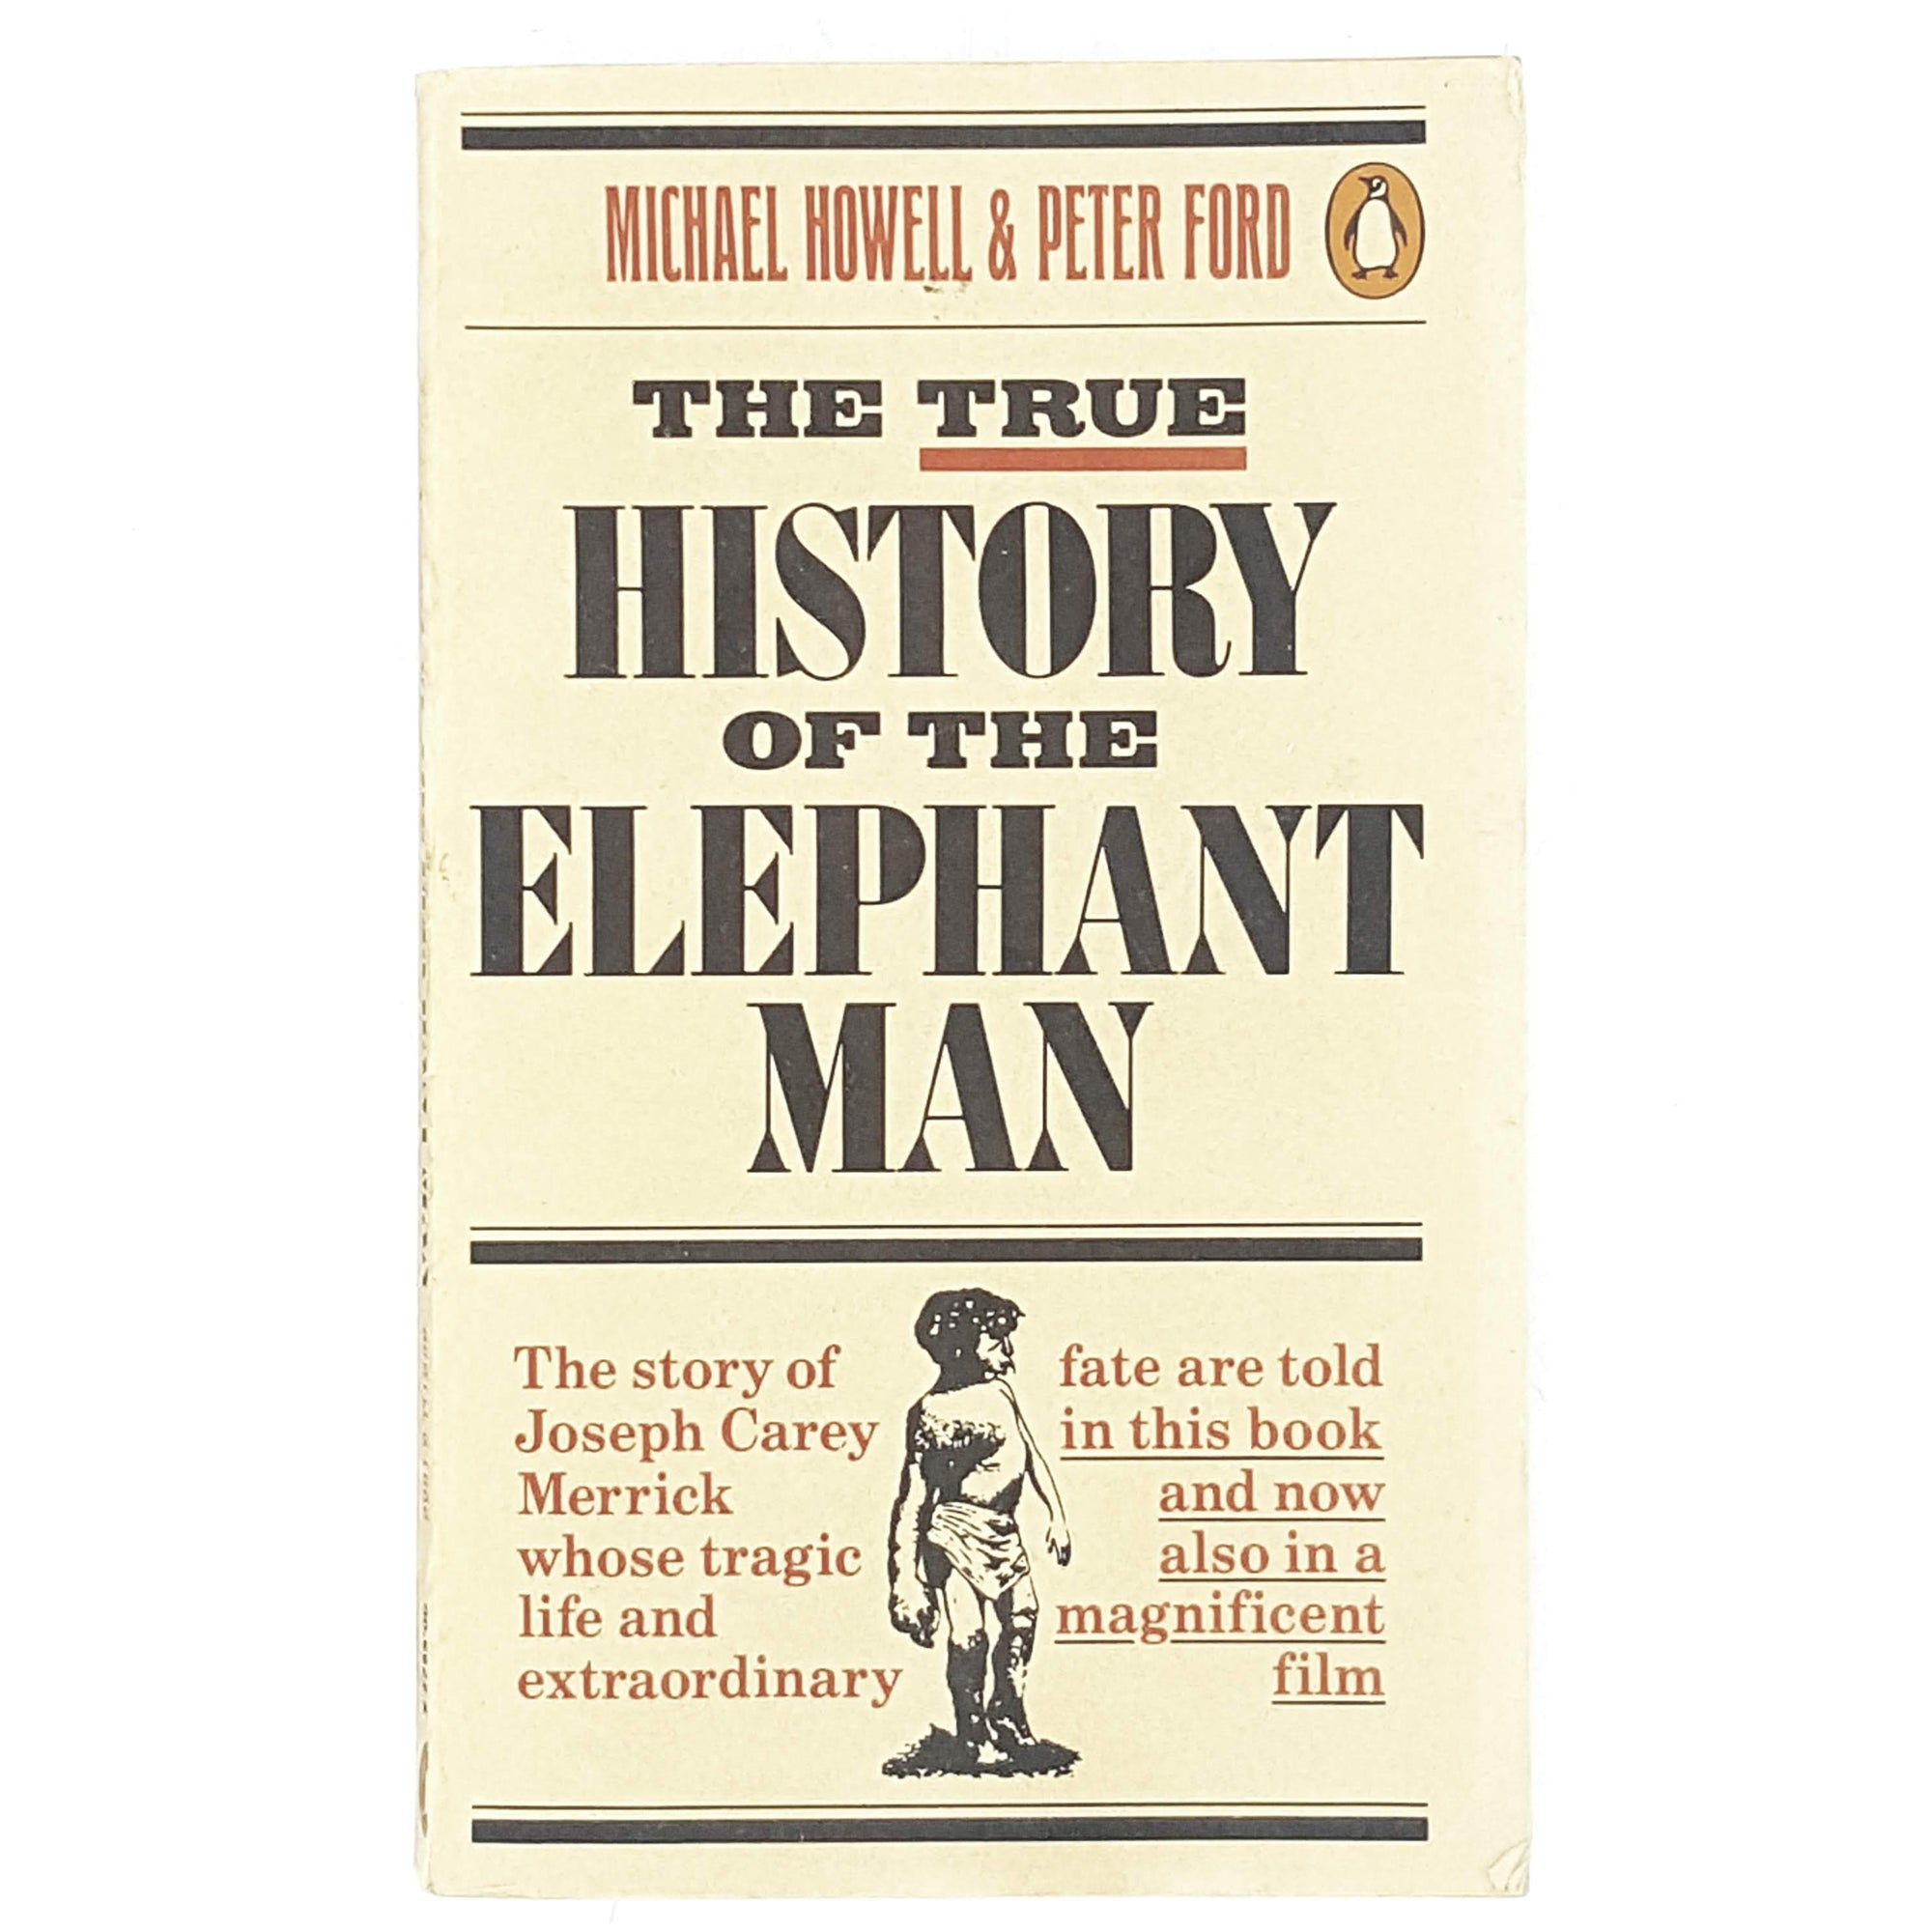 First Edition Penguin: The True History of the Elephant Man